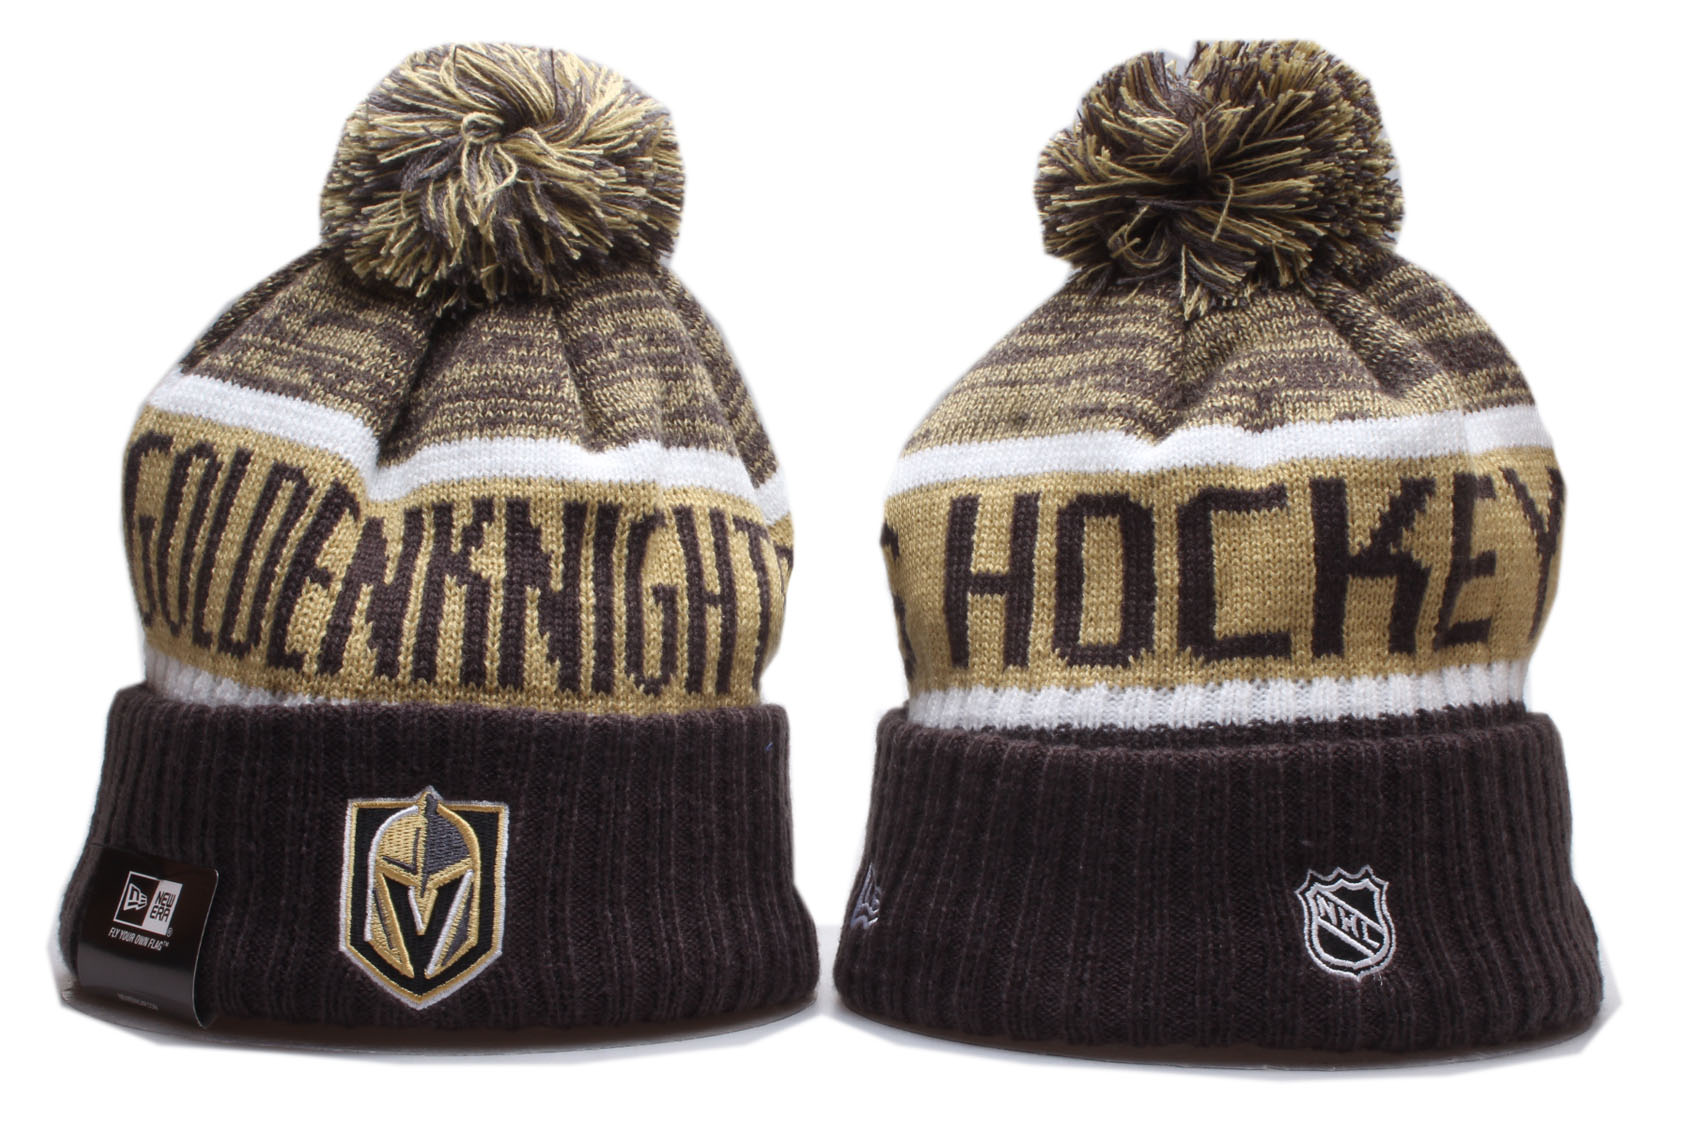 Wholesale 2020 NHL Vegas Golden Knights Beanies 1